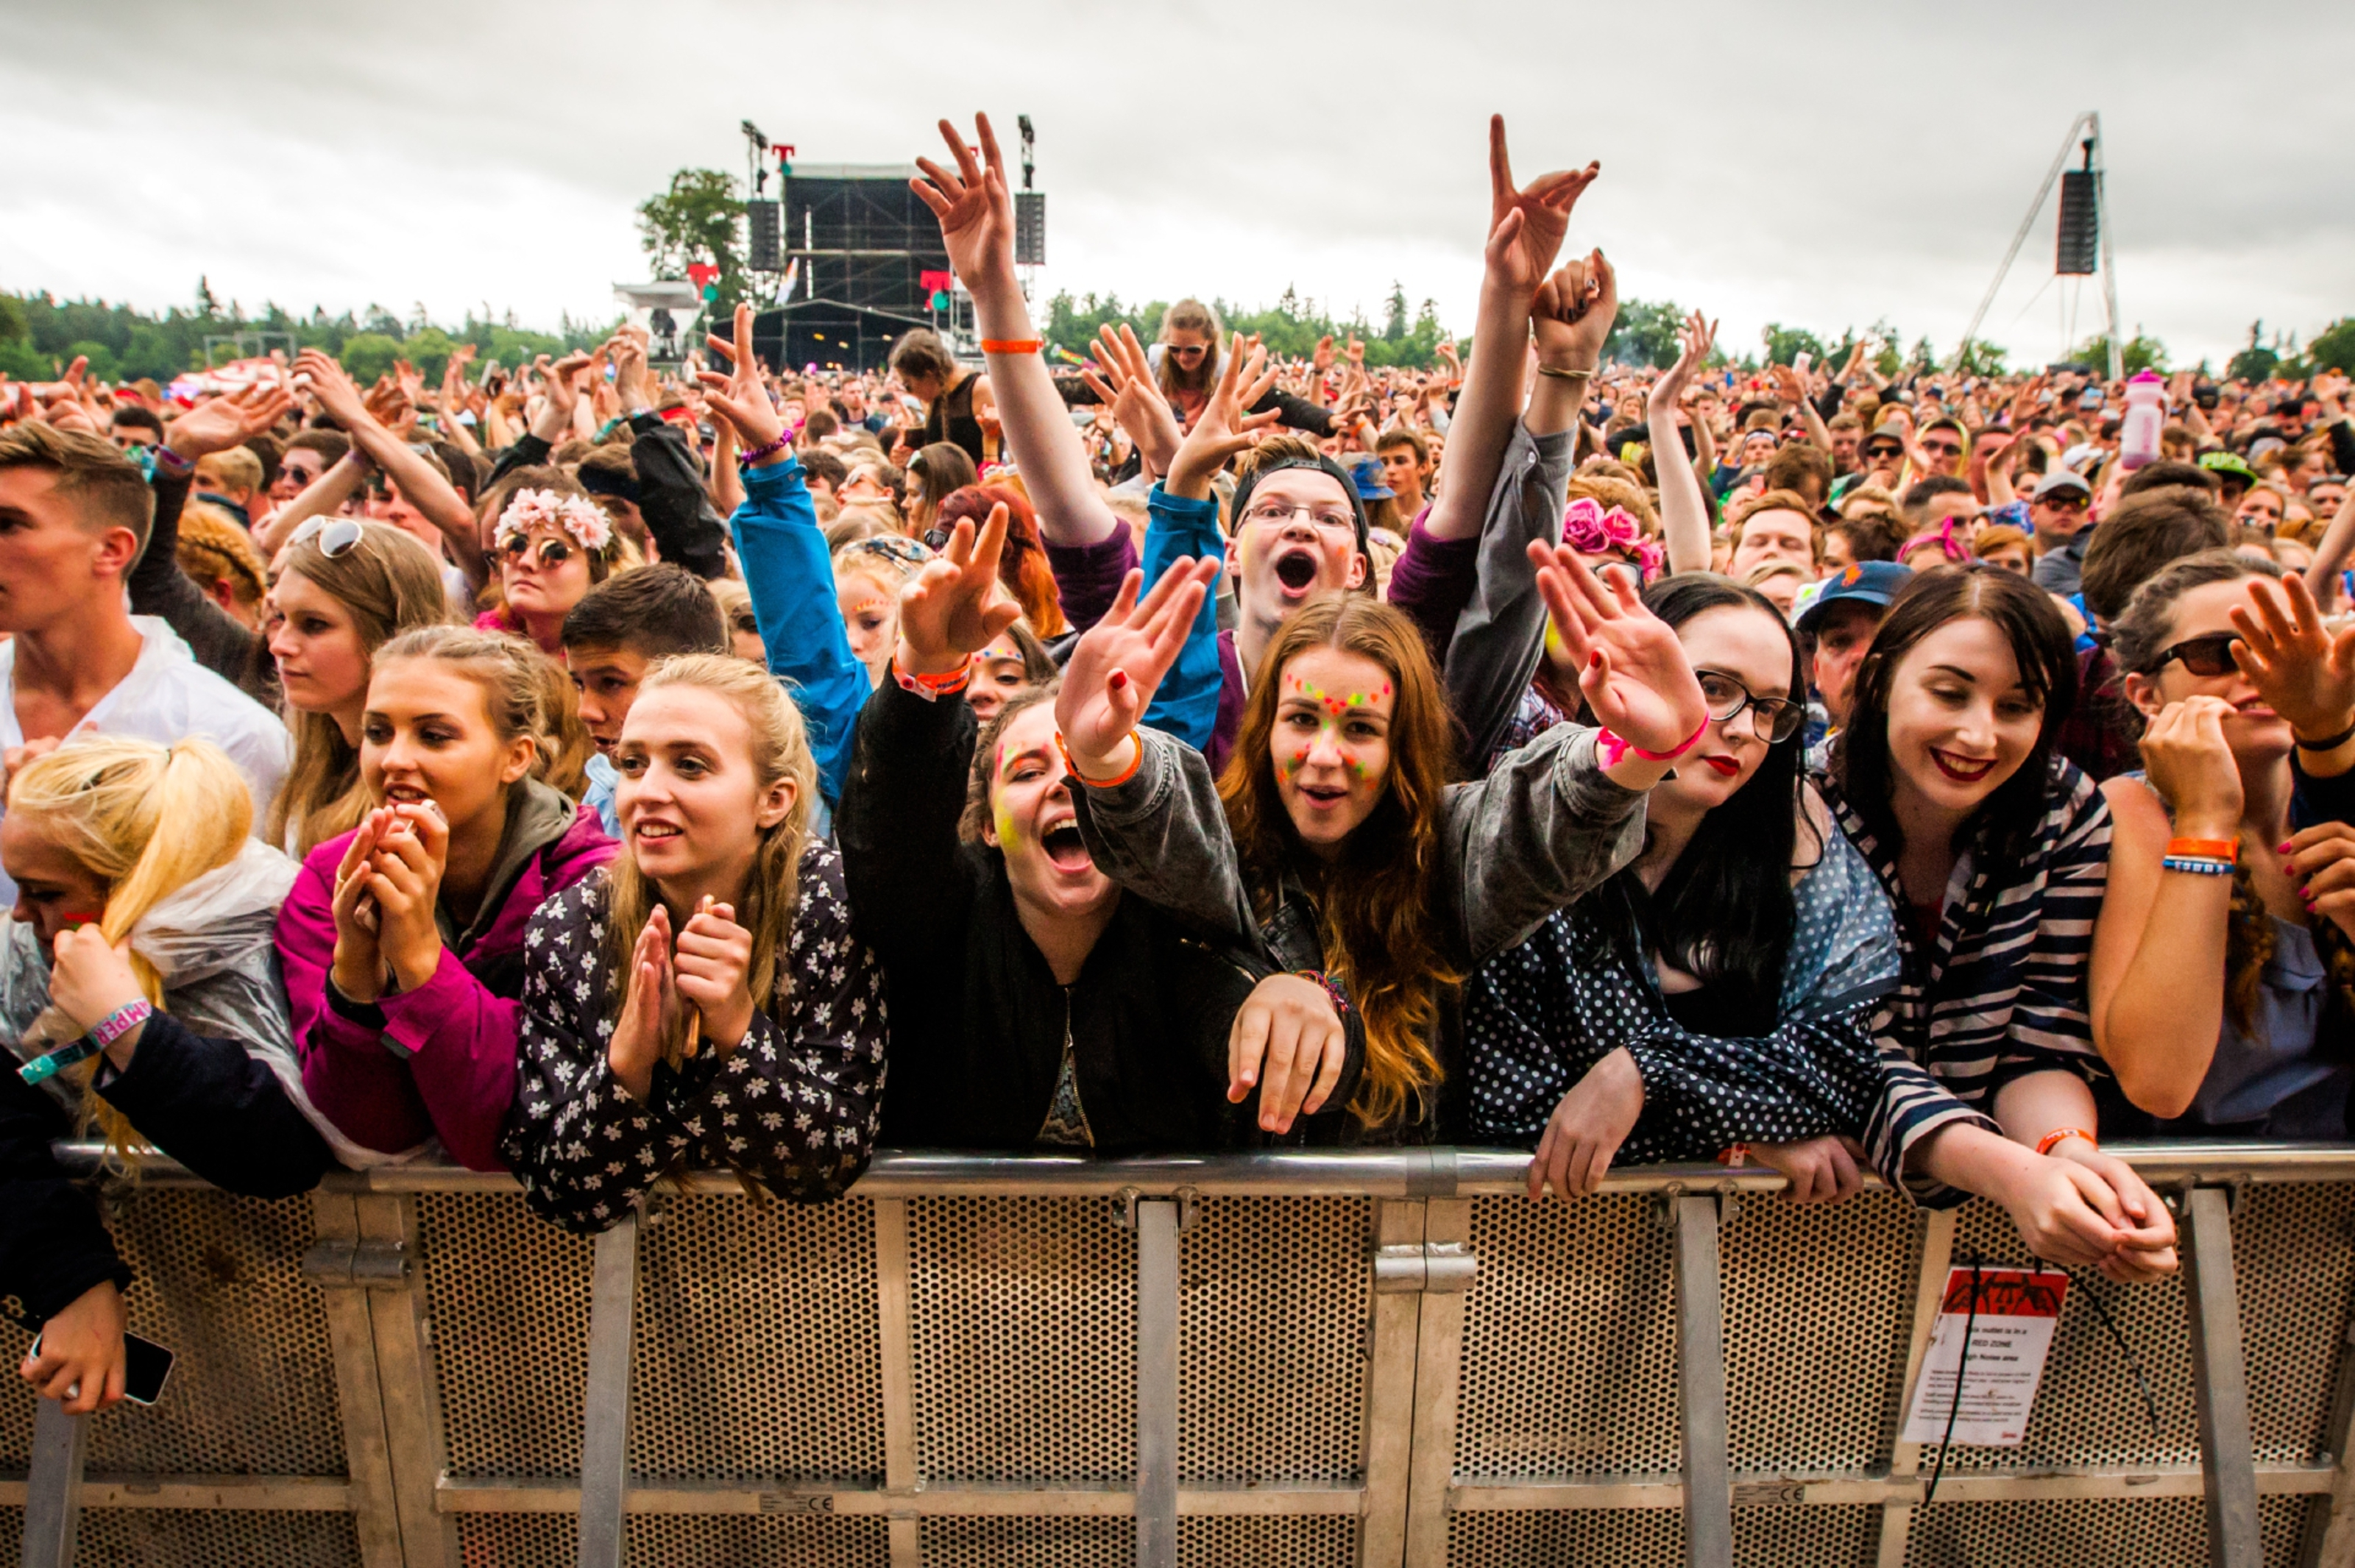 Geoff Ellis says T in the Park will bring in new age restrictions.